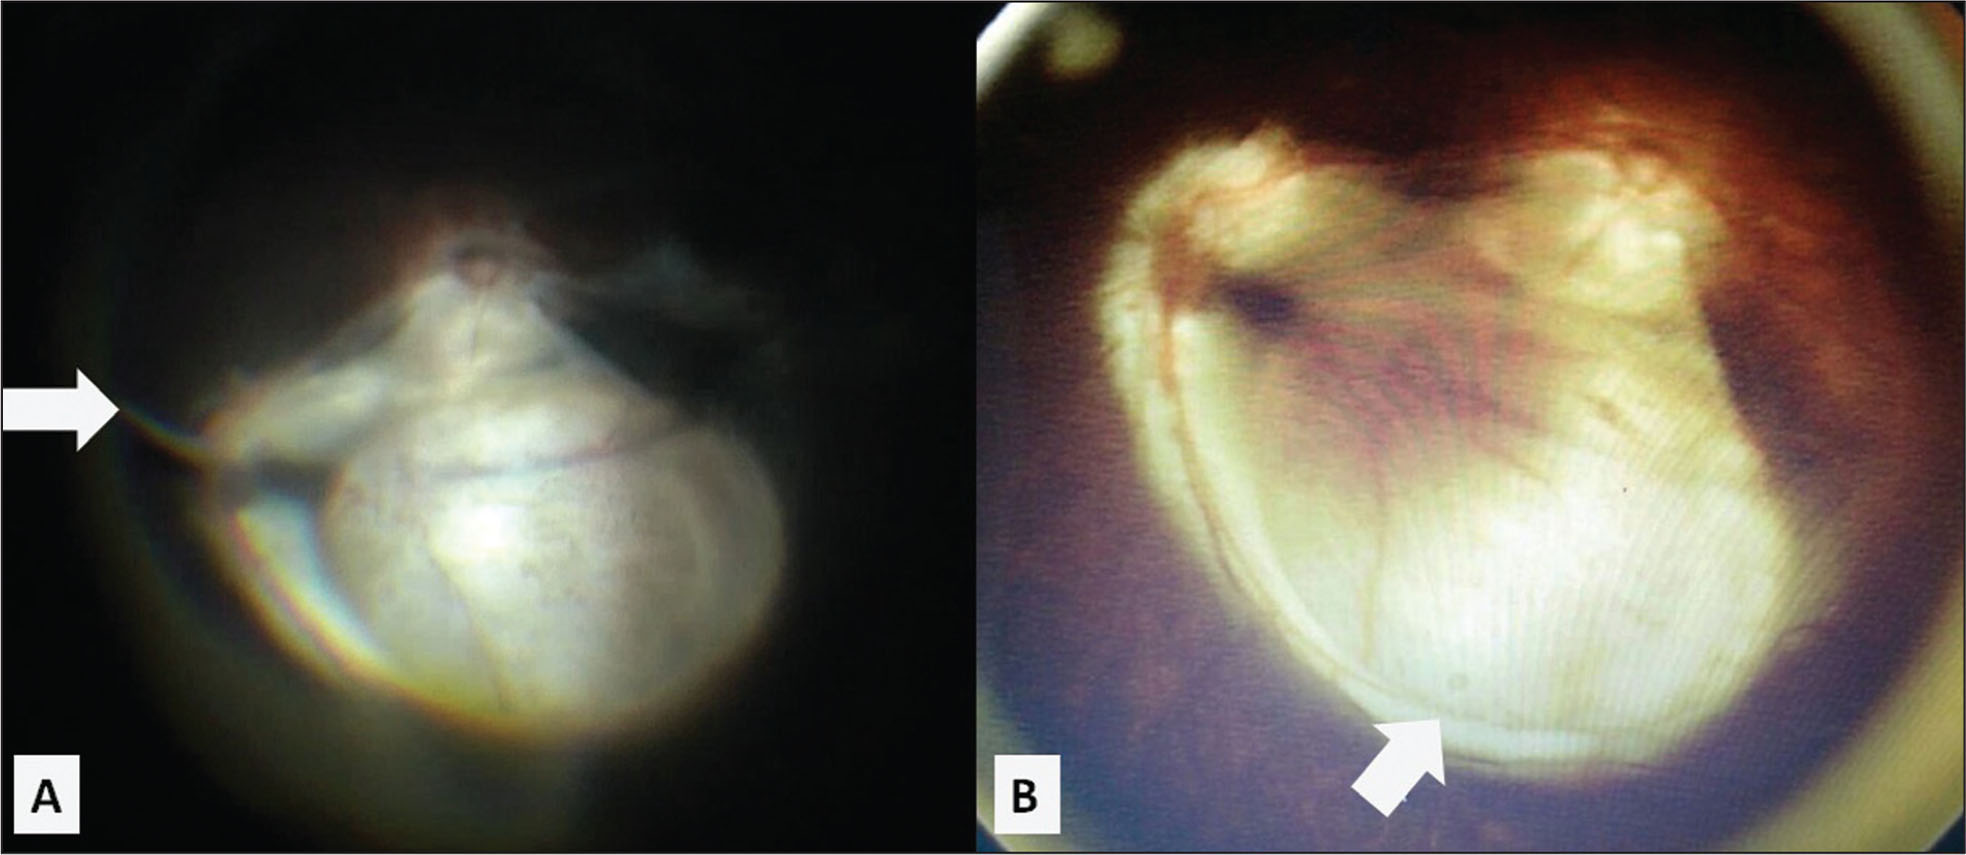 (A) Intraoperative fundus photograph of case 2 showing a stalk emanating from the optic disc in the left eye (arrow). (B) Postoperative fundus photograph showing the optic disc with the excised stalk and the choroidal coloboma (arrow).